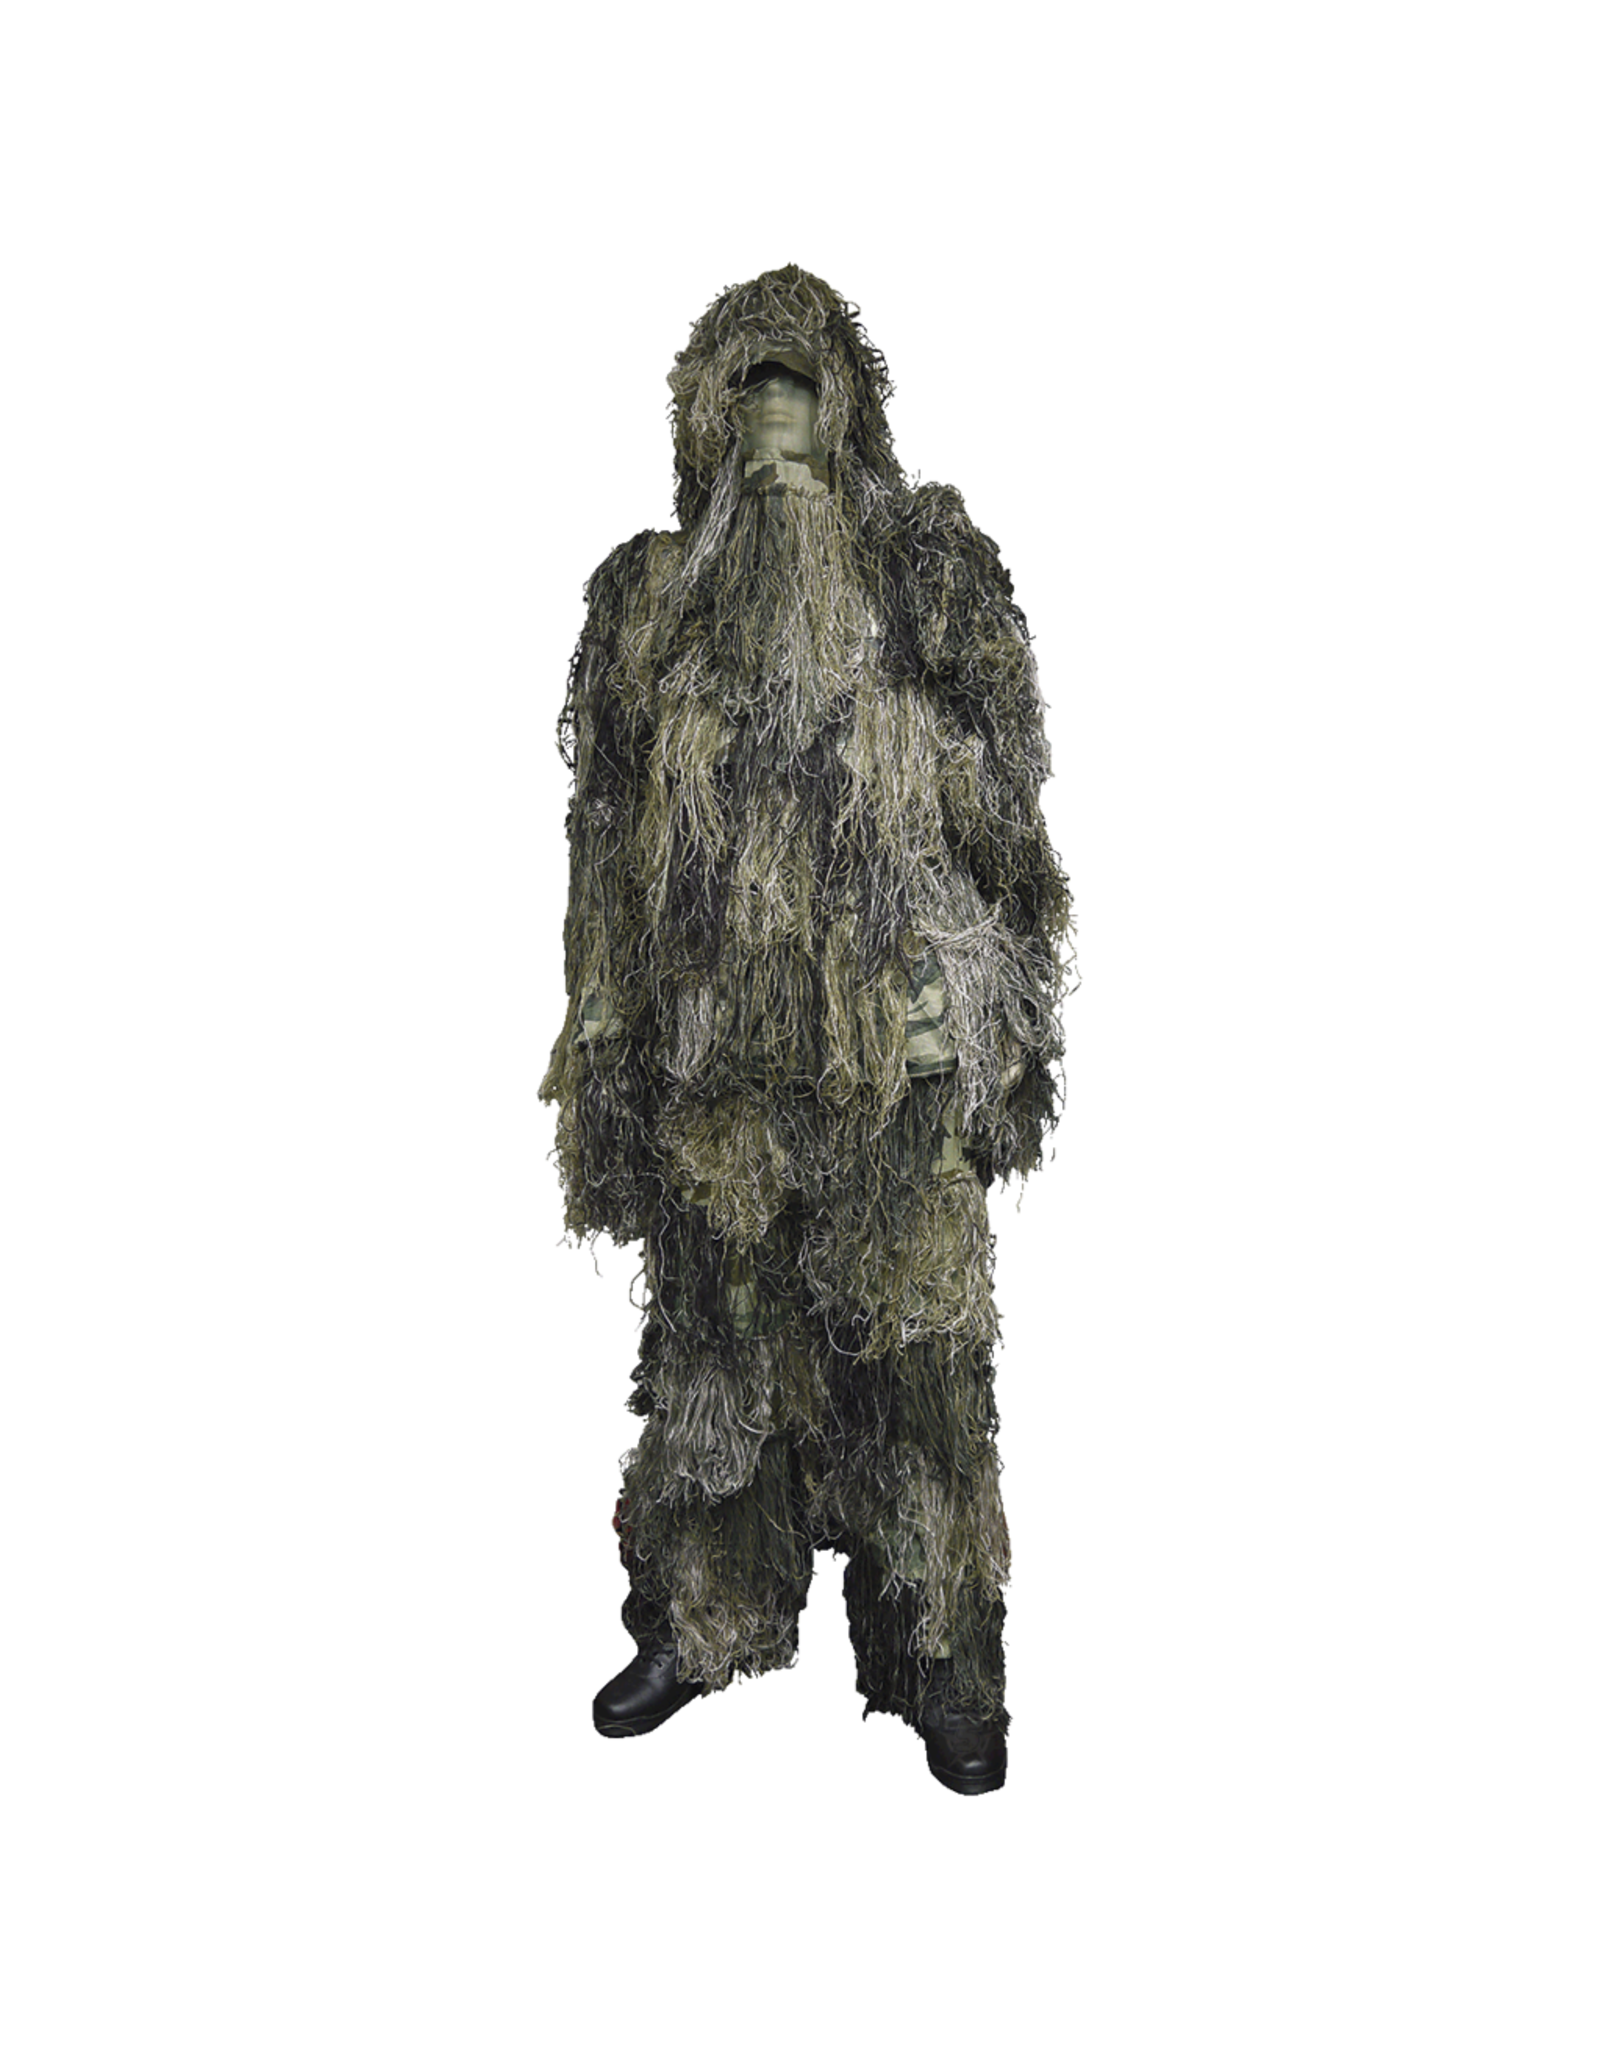 5IVE STAR GEAR 5IVE STAR GEAR CAMO GHILLIE SUIT